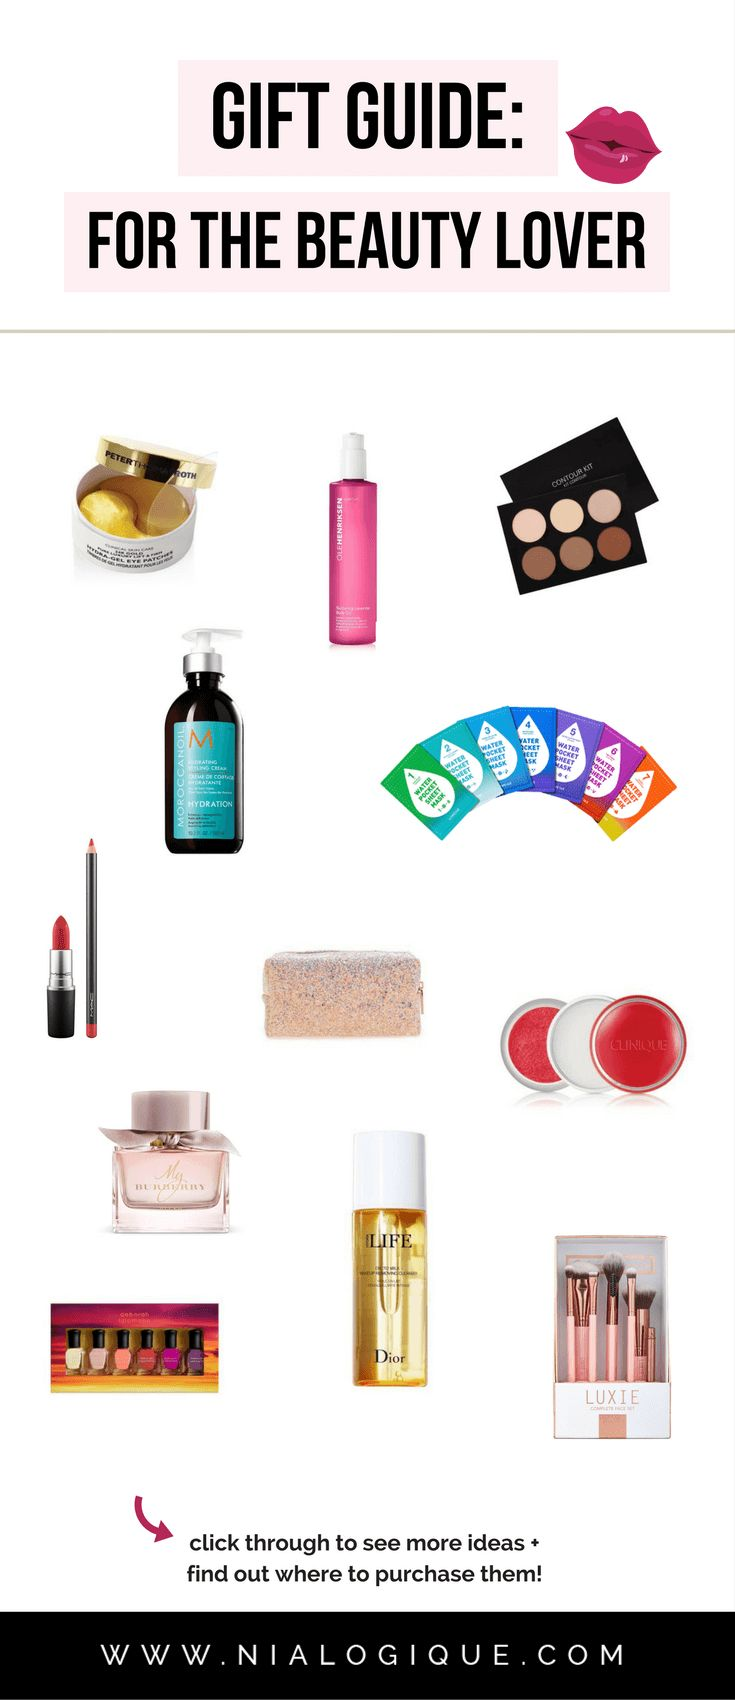 Gift Guide: For The Beauty Lover | 20 gorgeous gifts for your beauty-obsessed girlfriend, wife, mother, aunt, coworker, or friend! | birthday gift ideas, christmas gift ideas, valentines day gift ideas, gifts for her, makeup, hair care, skin care, nail care